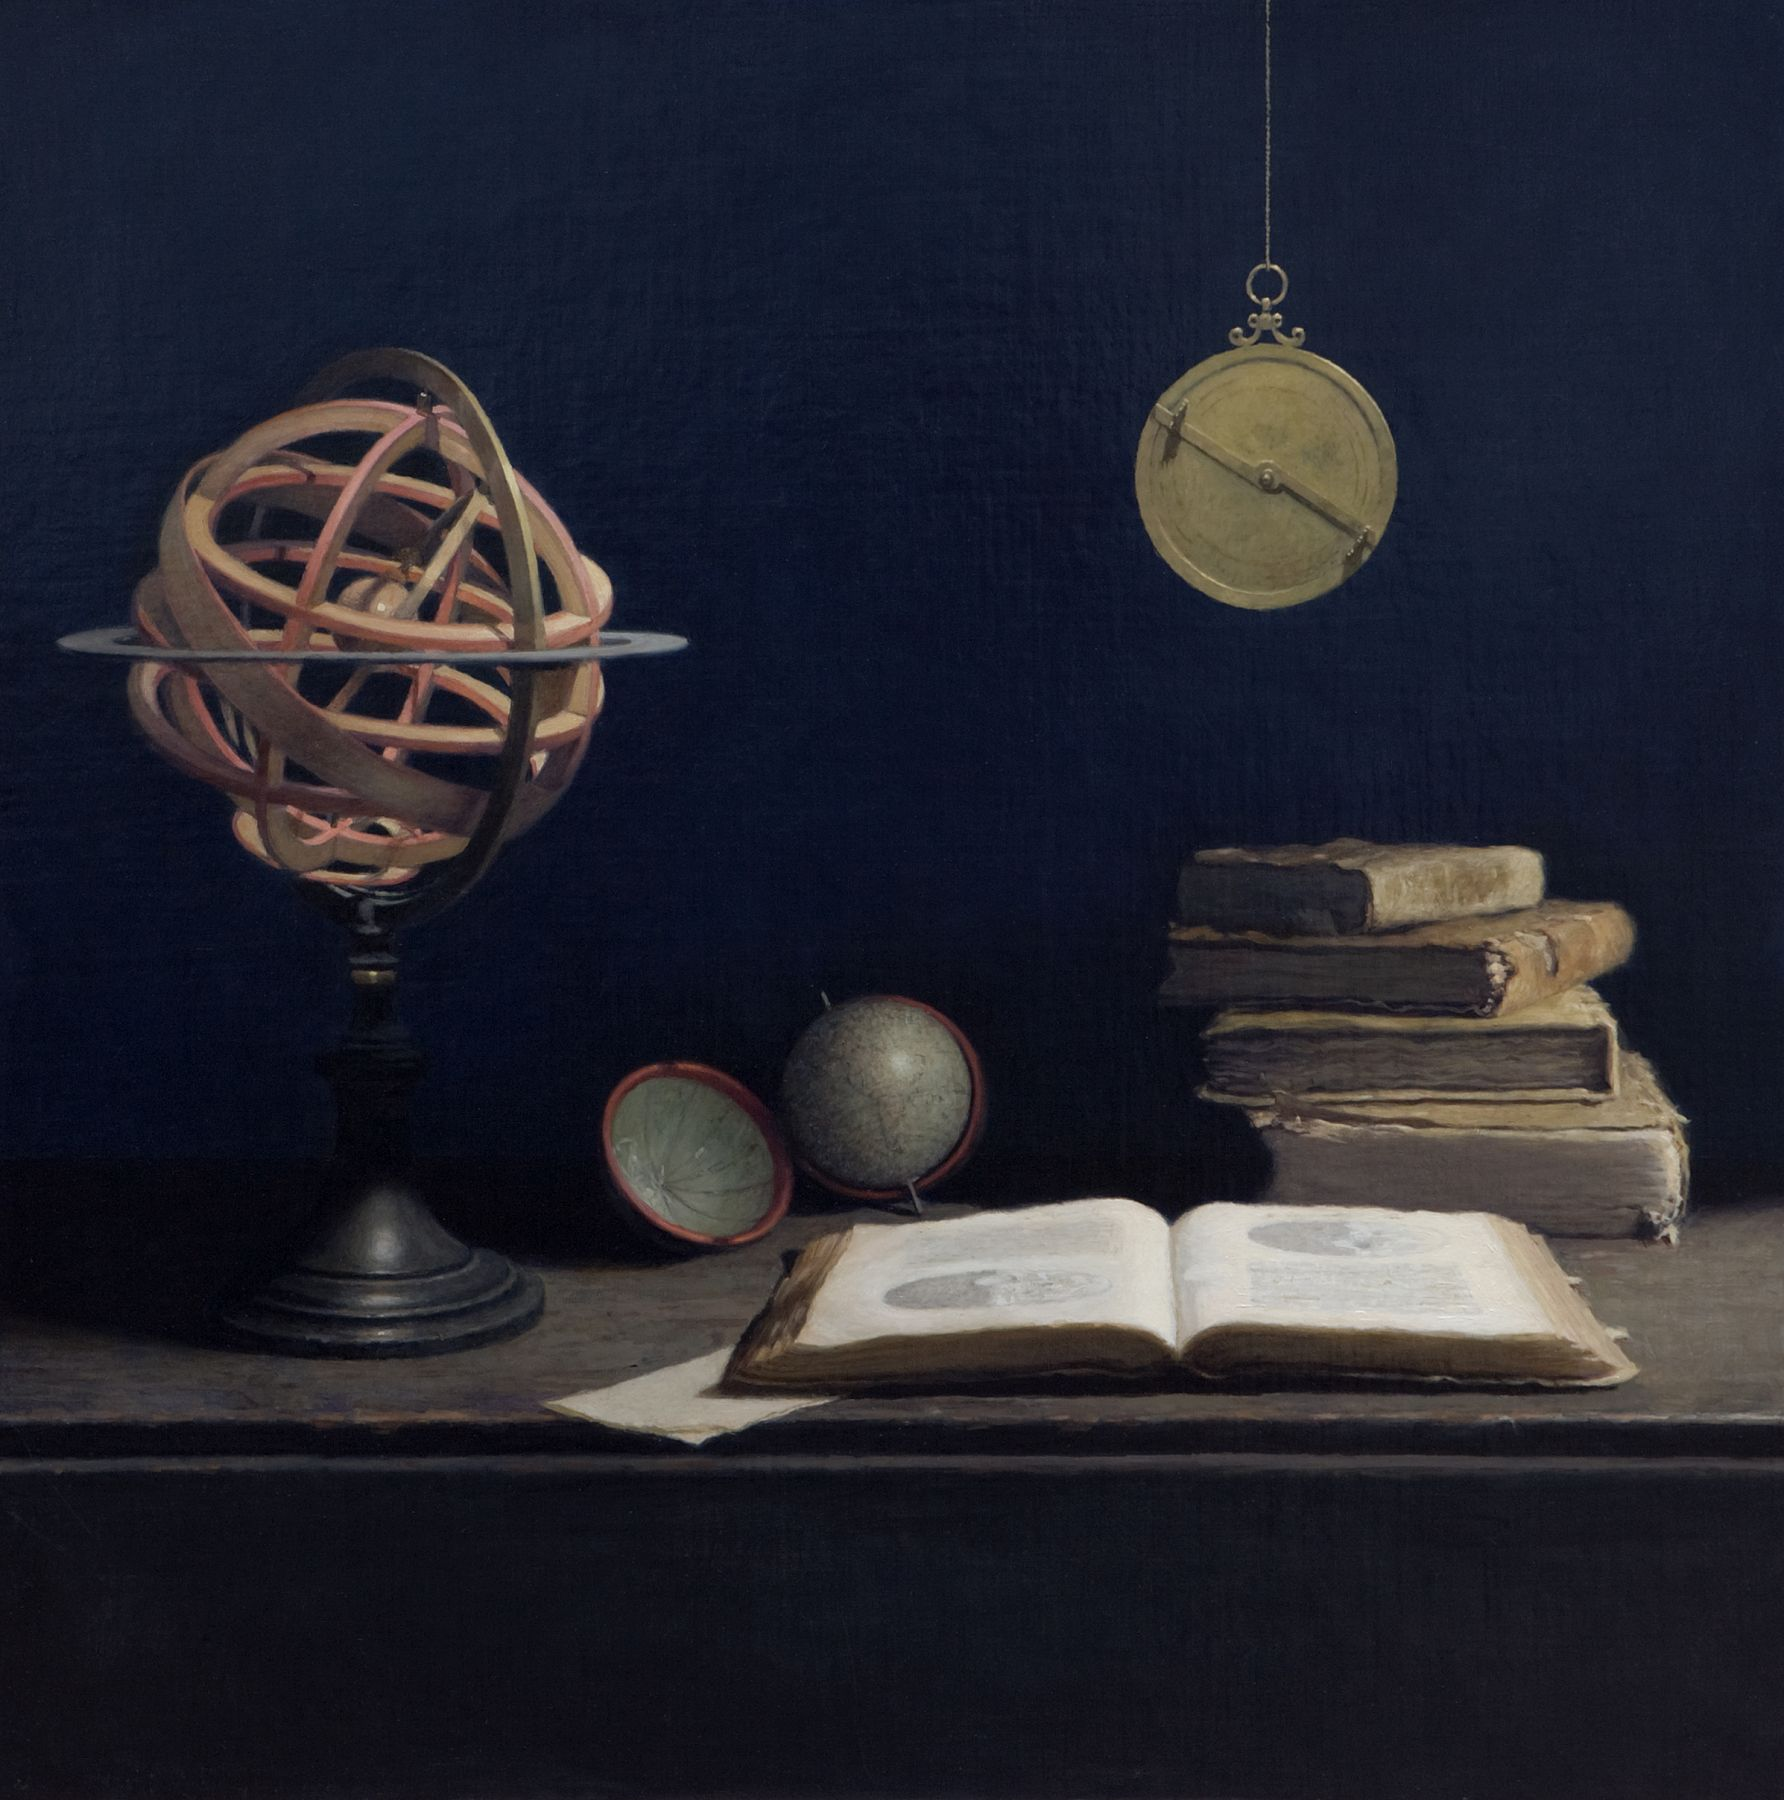 guillermo munoz vera, Sidereus Nucius, 2010, oil on canvas on panel, 35 3/8 x 35 3/8 inches